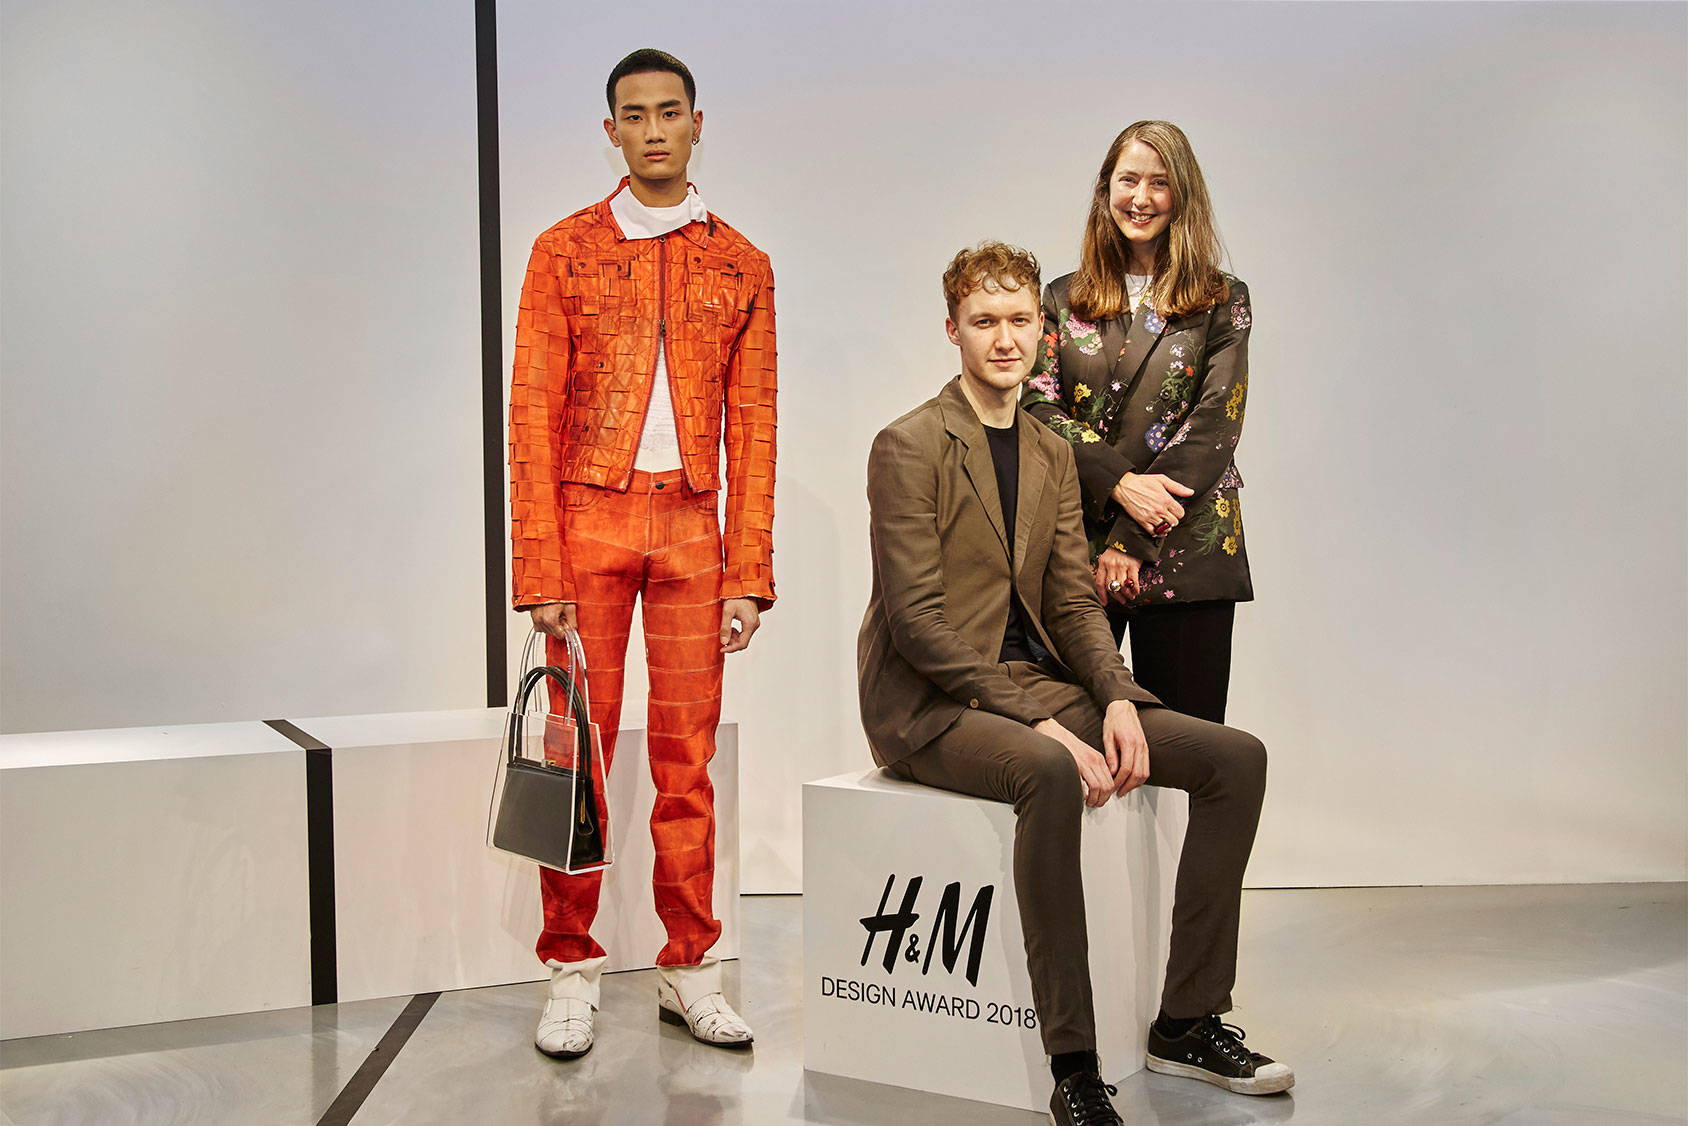 Stefan Cooke wins the H&M Design Award 2018